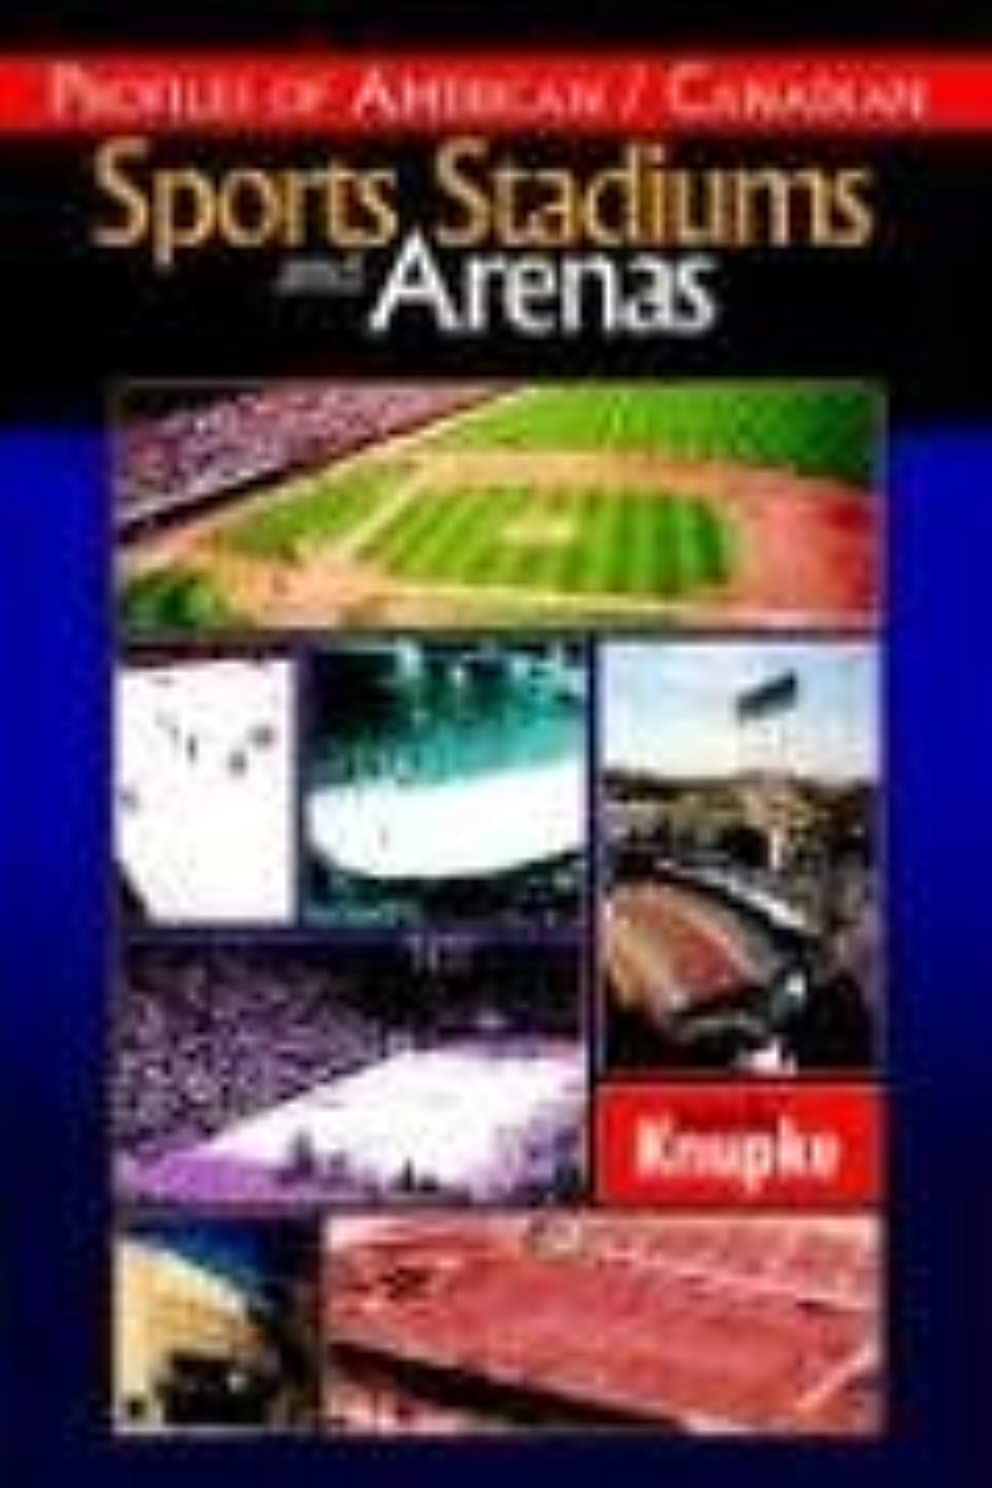 バングラデシュ一時停止財産Profiles of American / Canadian Sports Stadiums And Arenas